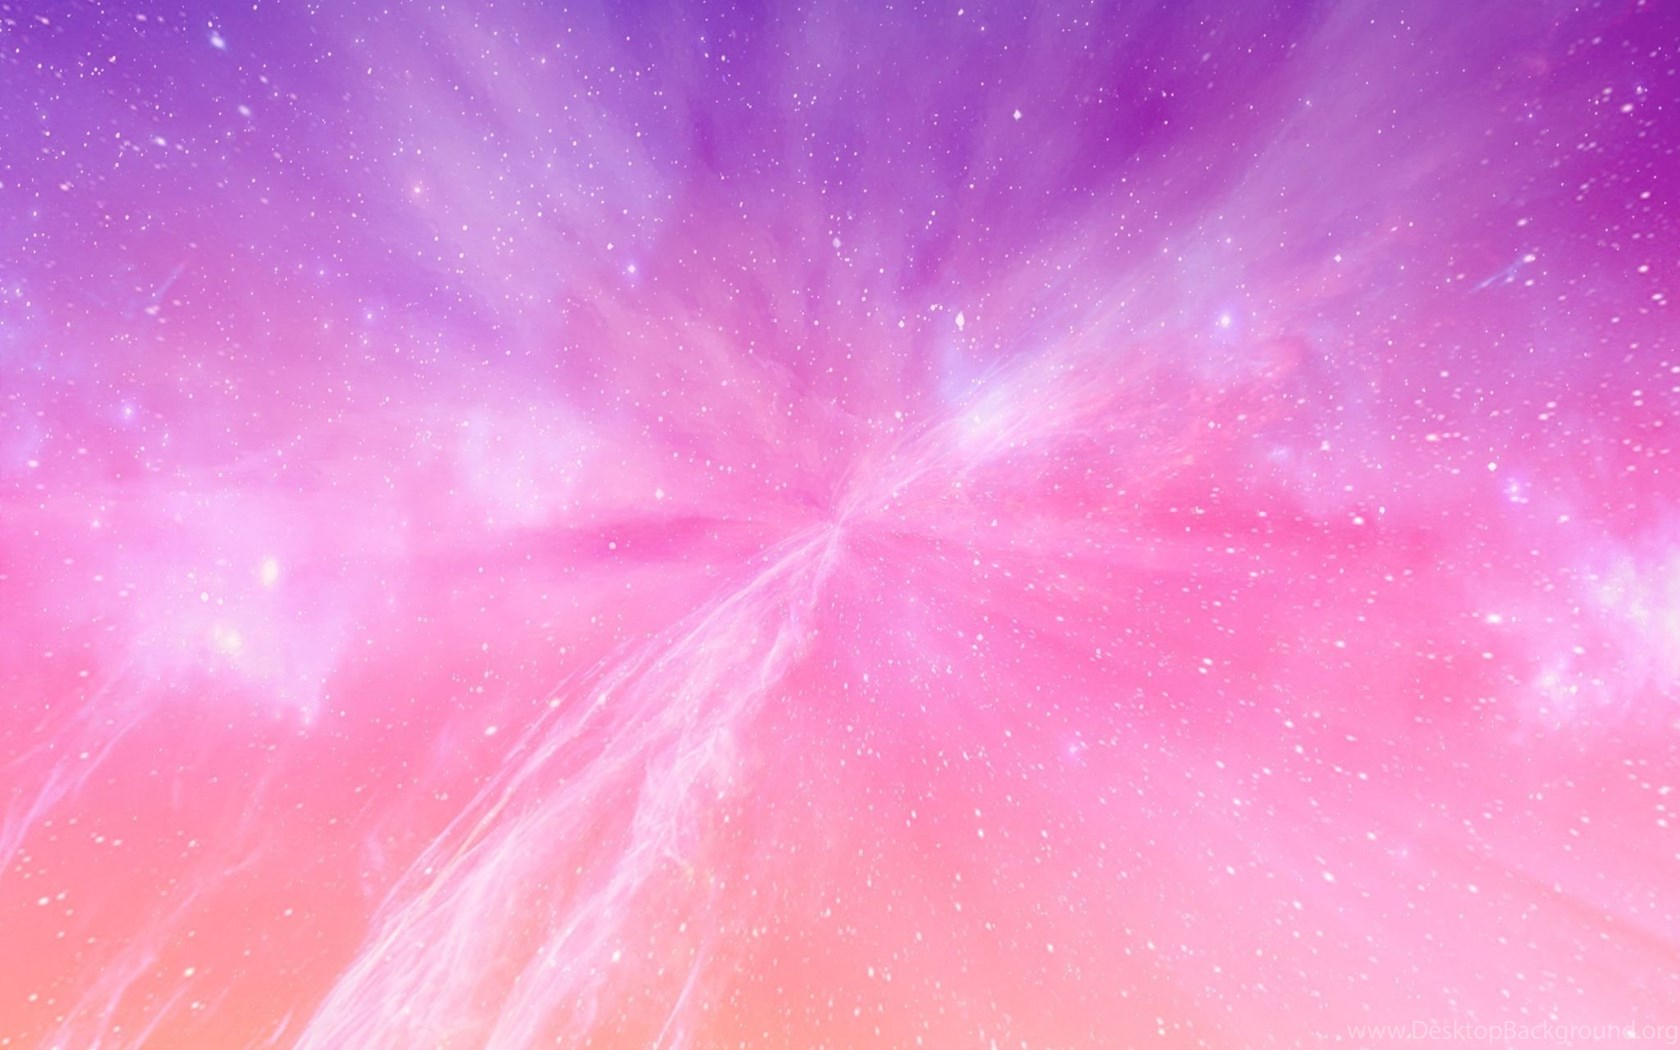 Purple Aesthetic Wallpaper Soft Purple Aesthetic Wallpaper